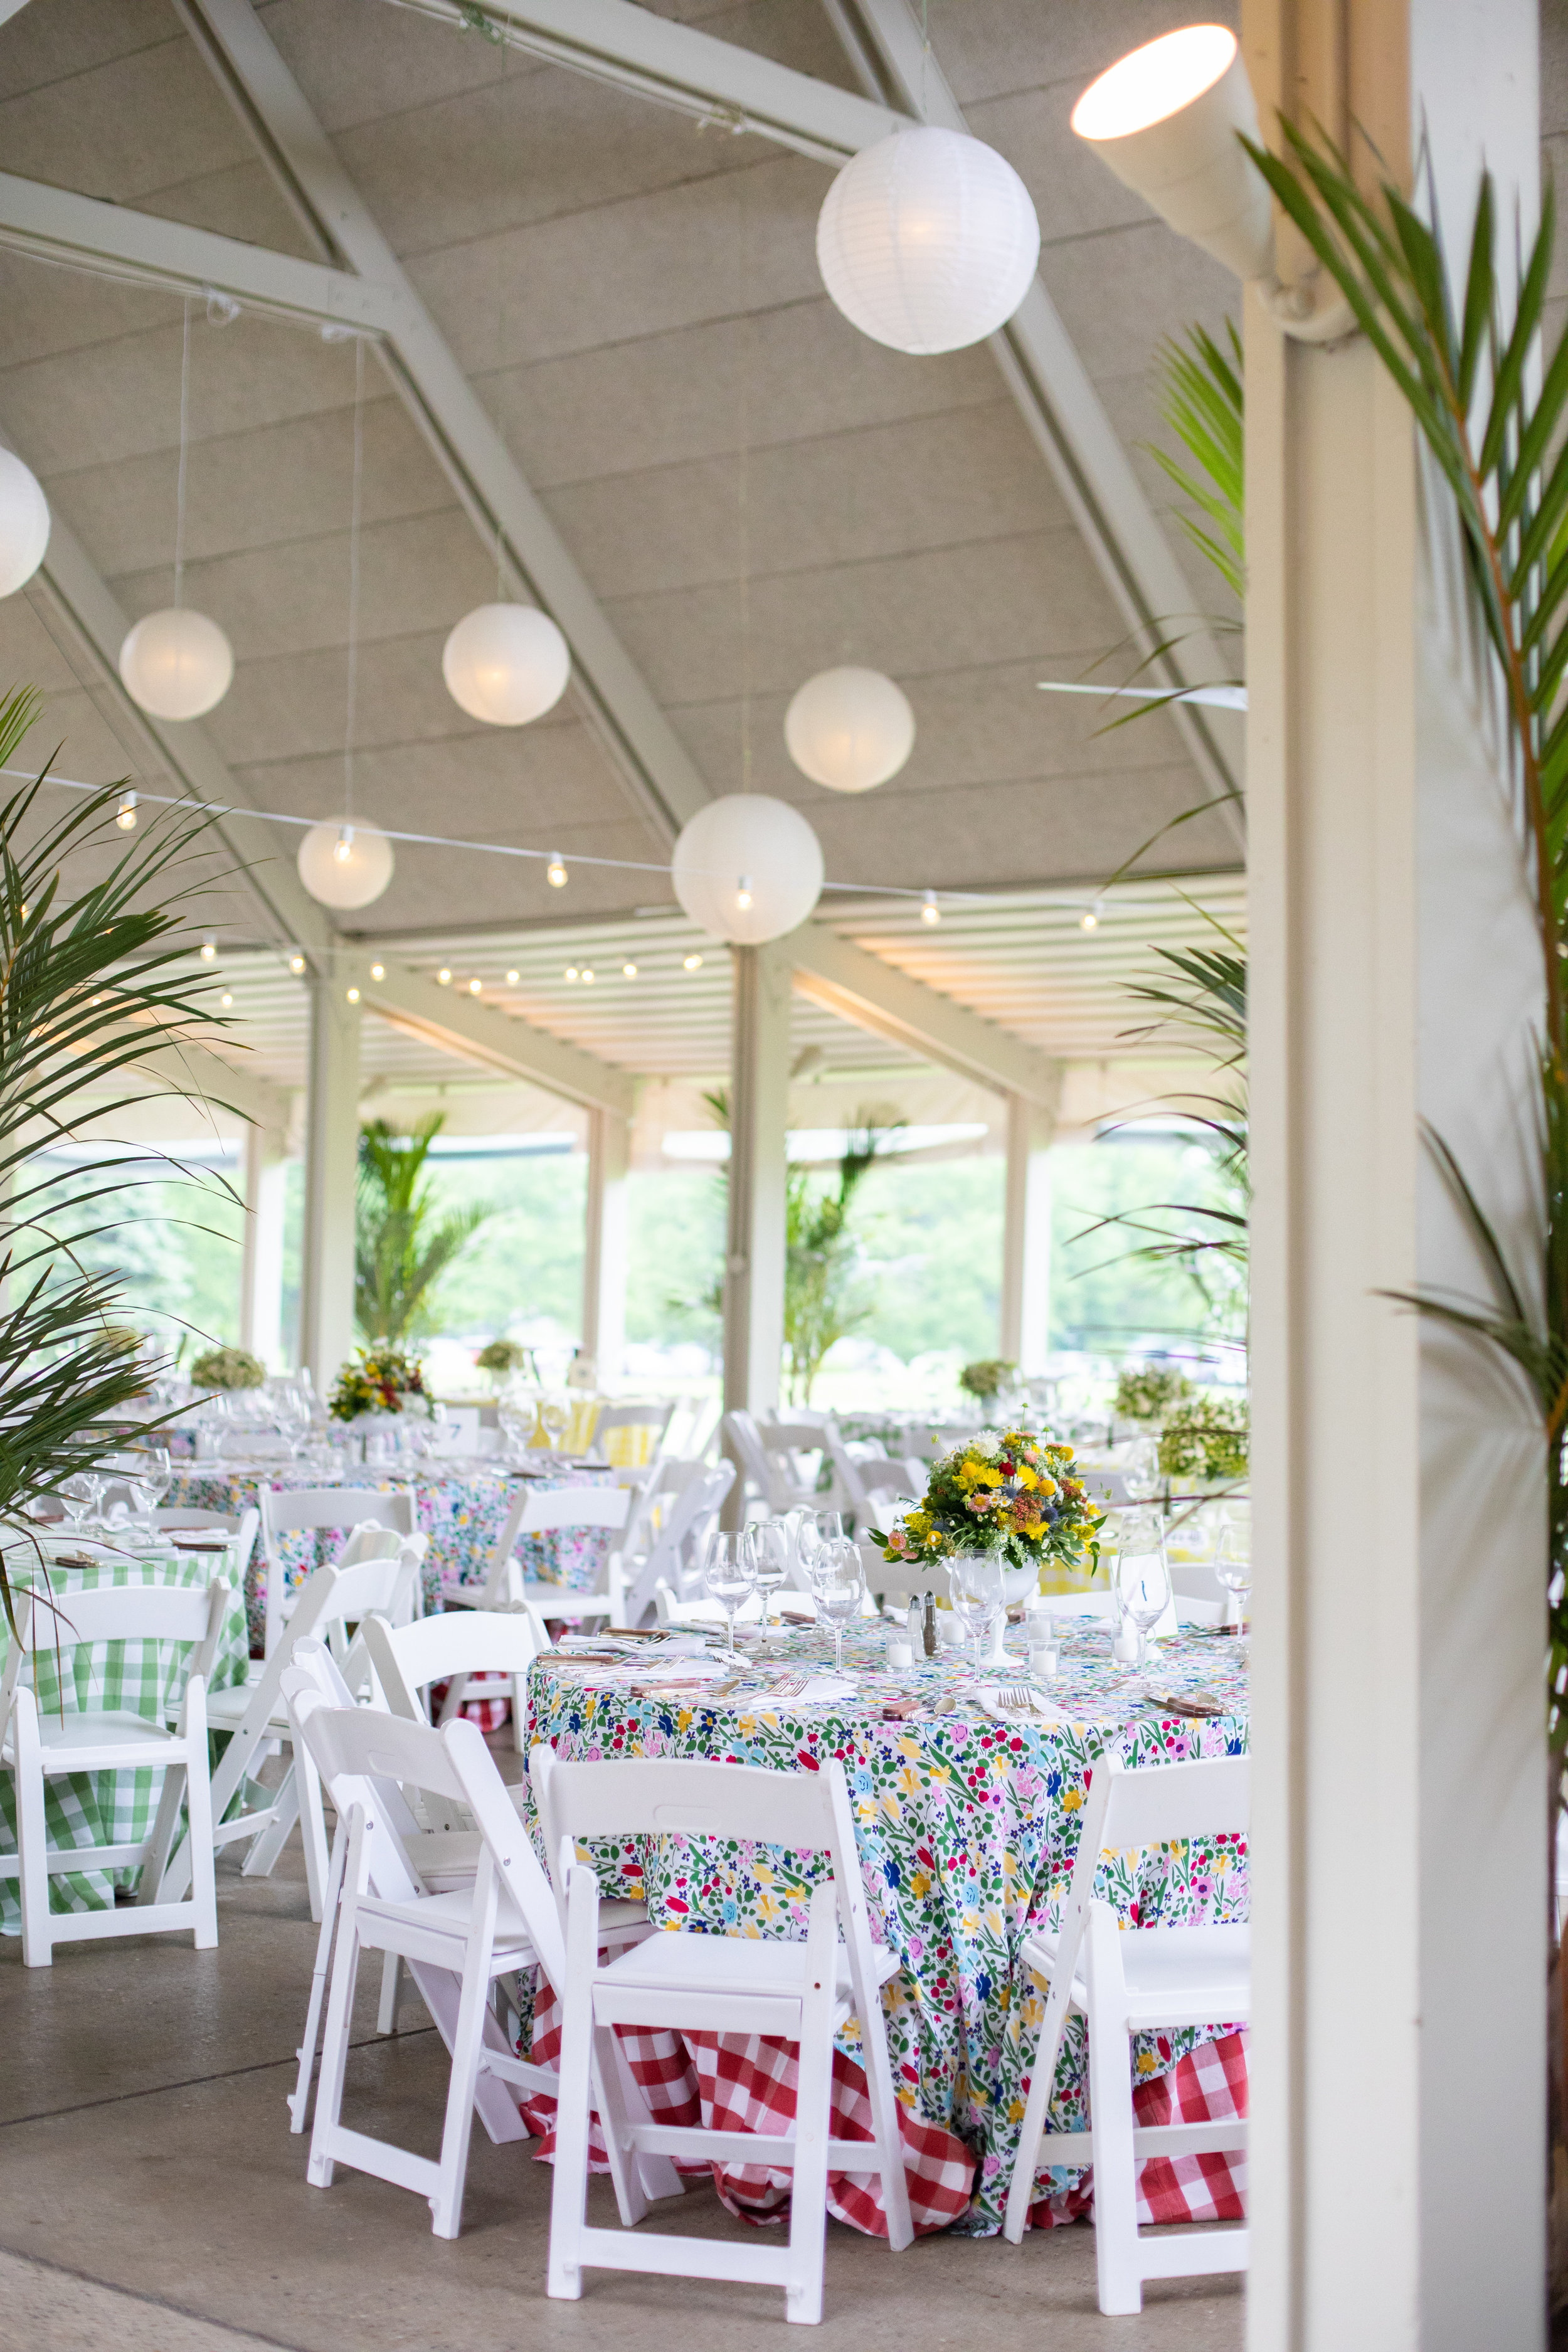 Colorful summer party with summer blooms. Floral design www.yellowcanaryonline.com